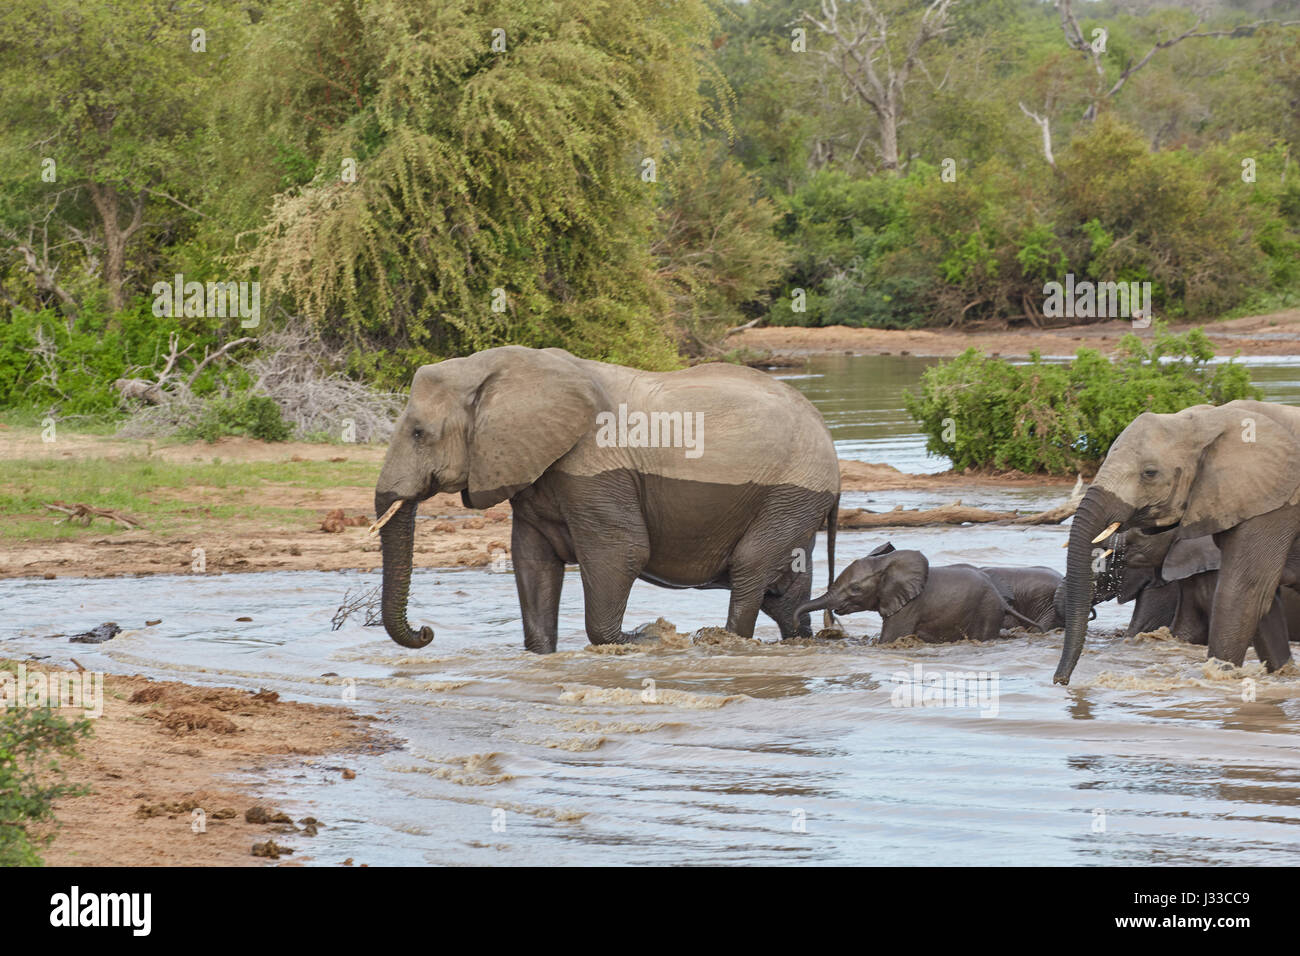 Elephants crossing a waterhole, Krueger National park, South Africa, Africa - Stock Image